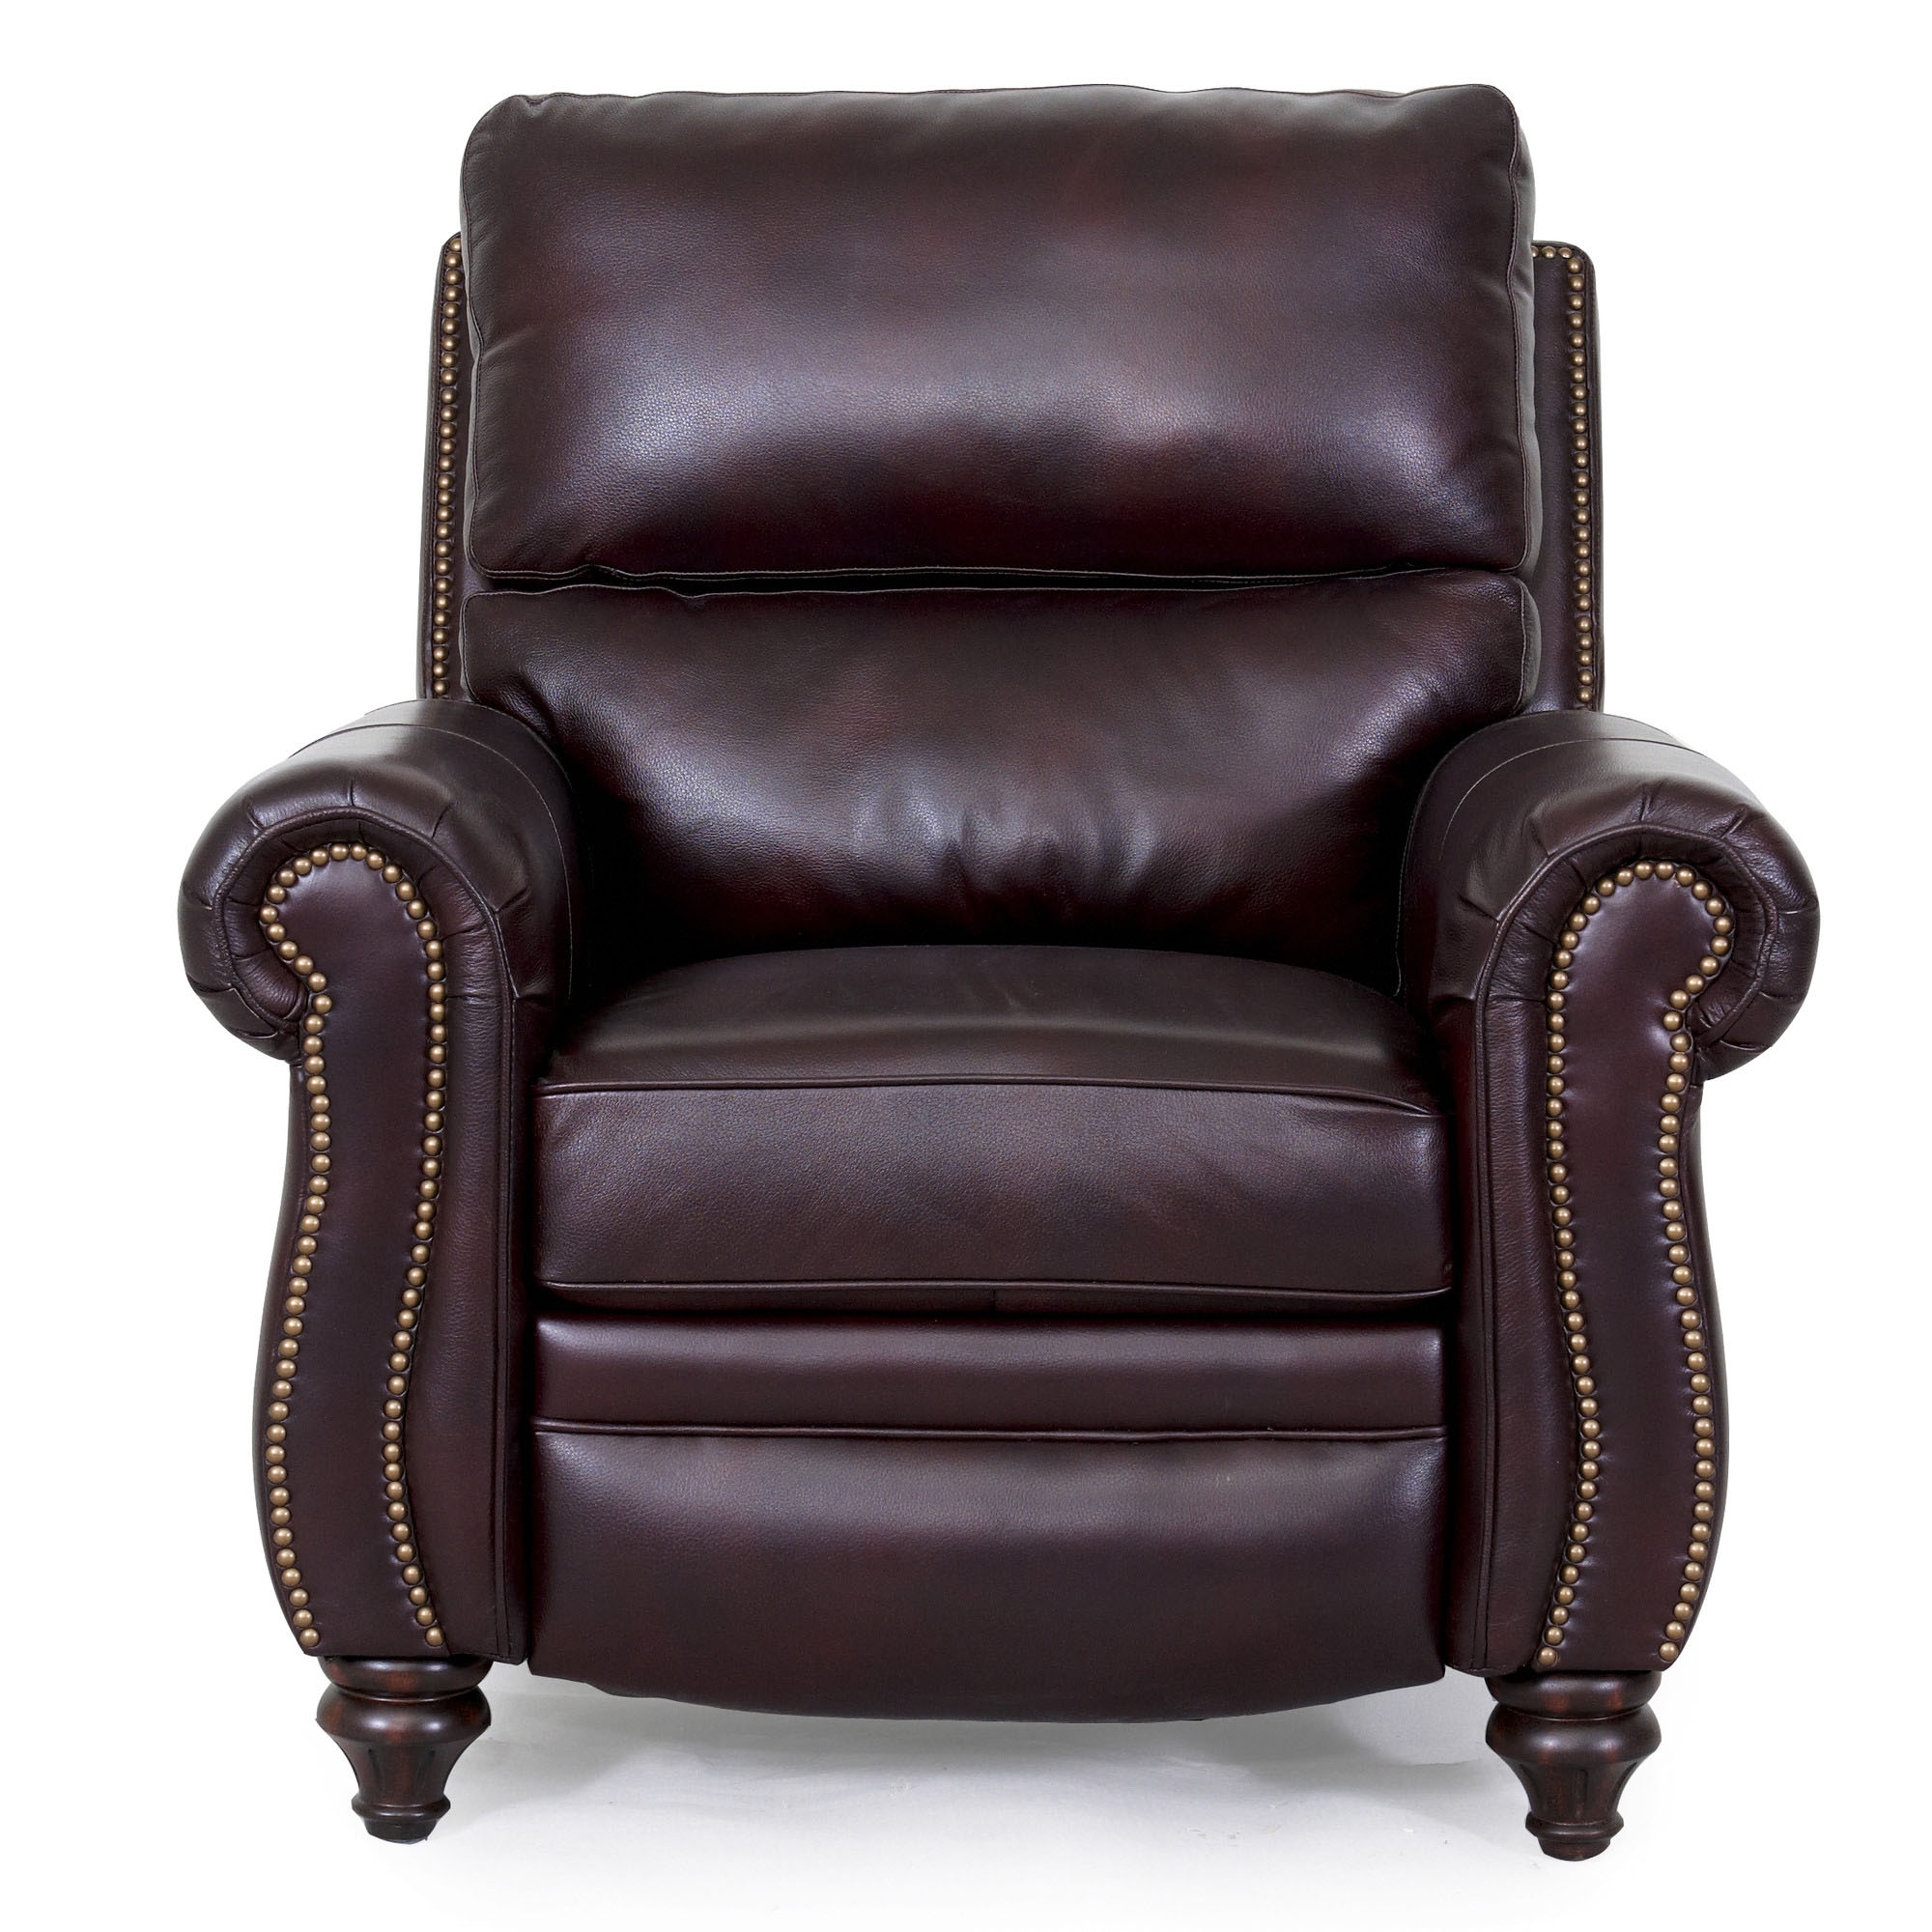 Office Chair Furniture barcalounger dalton ii recliner chair - leather recliner chair